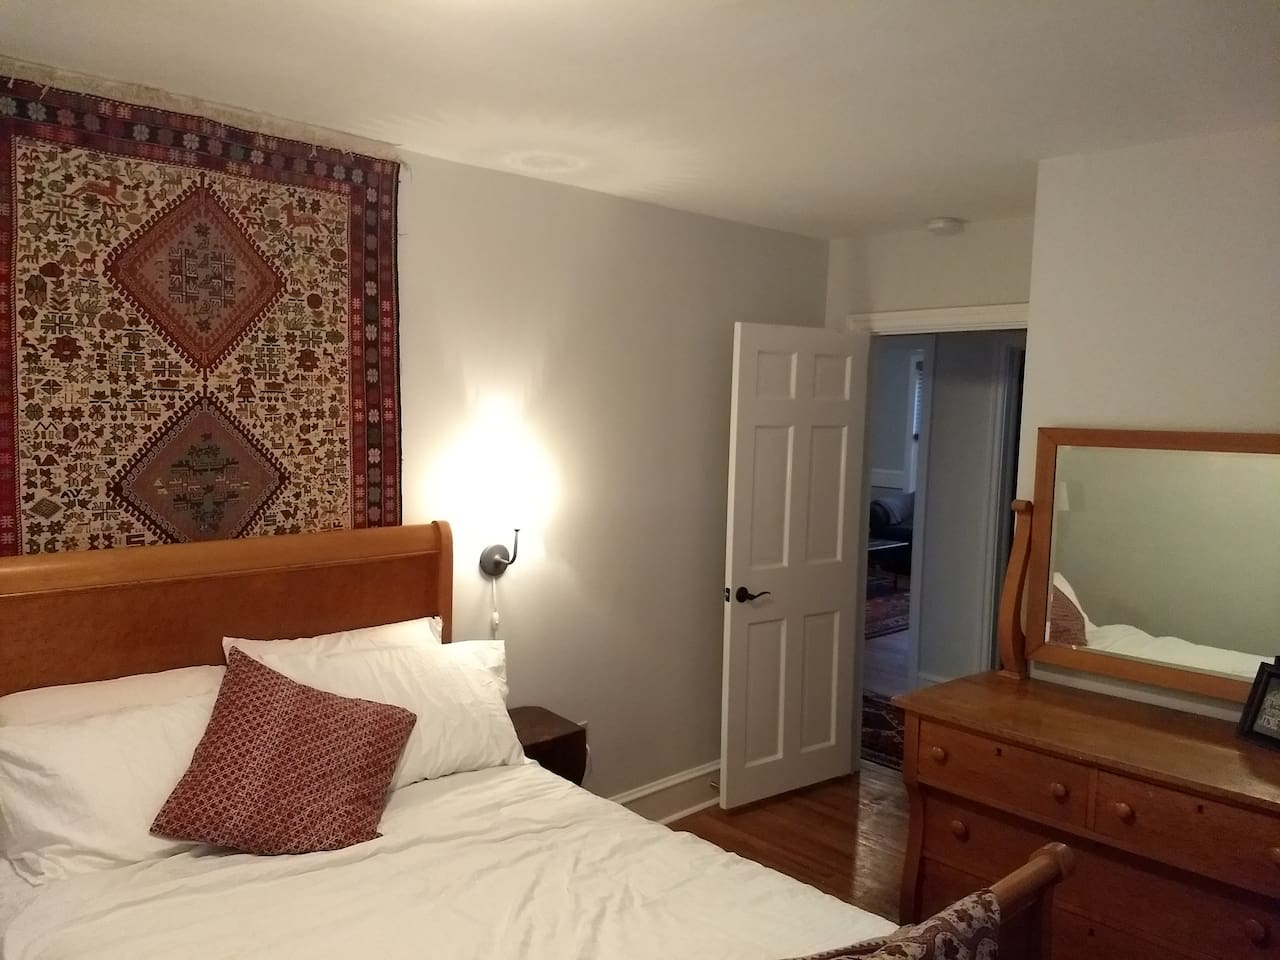 Turkish tapestry and antique furniture throughout. This is bedrooom one.